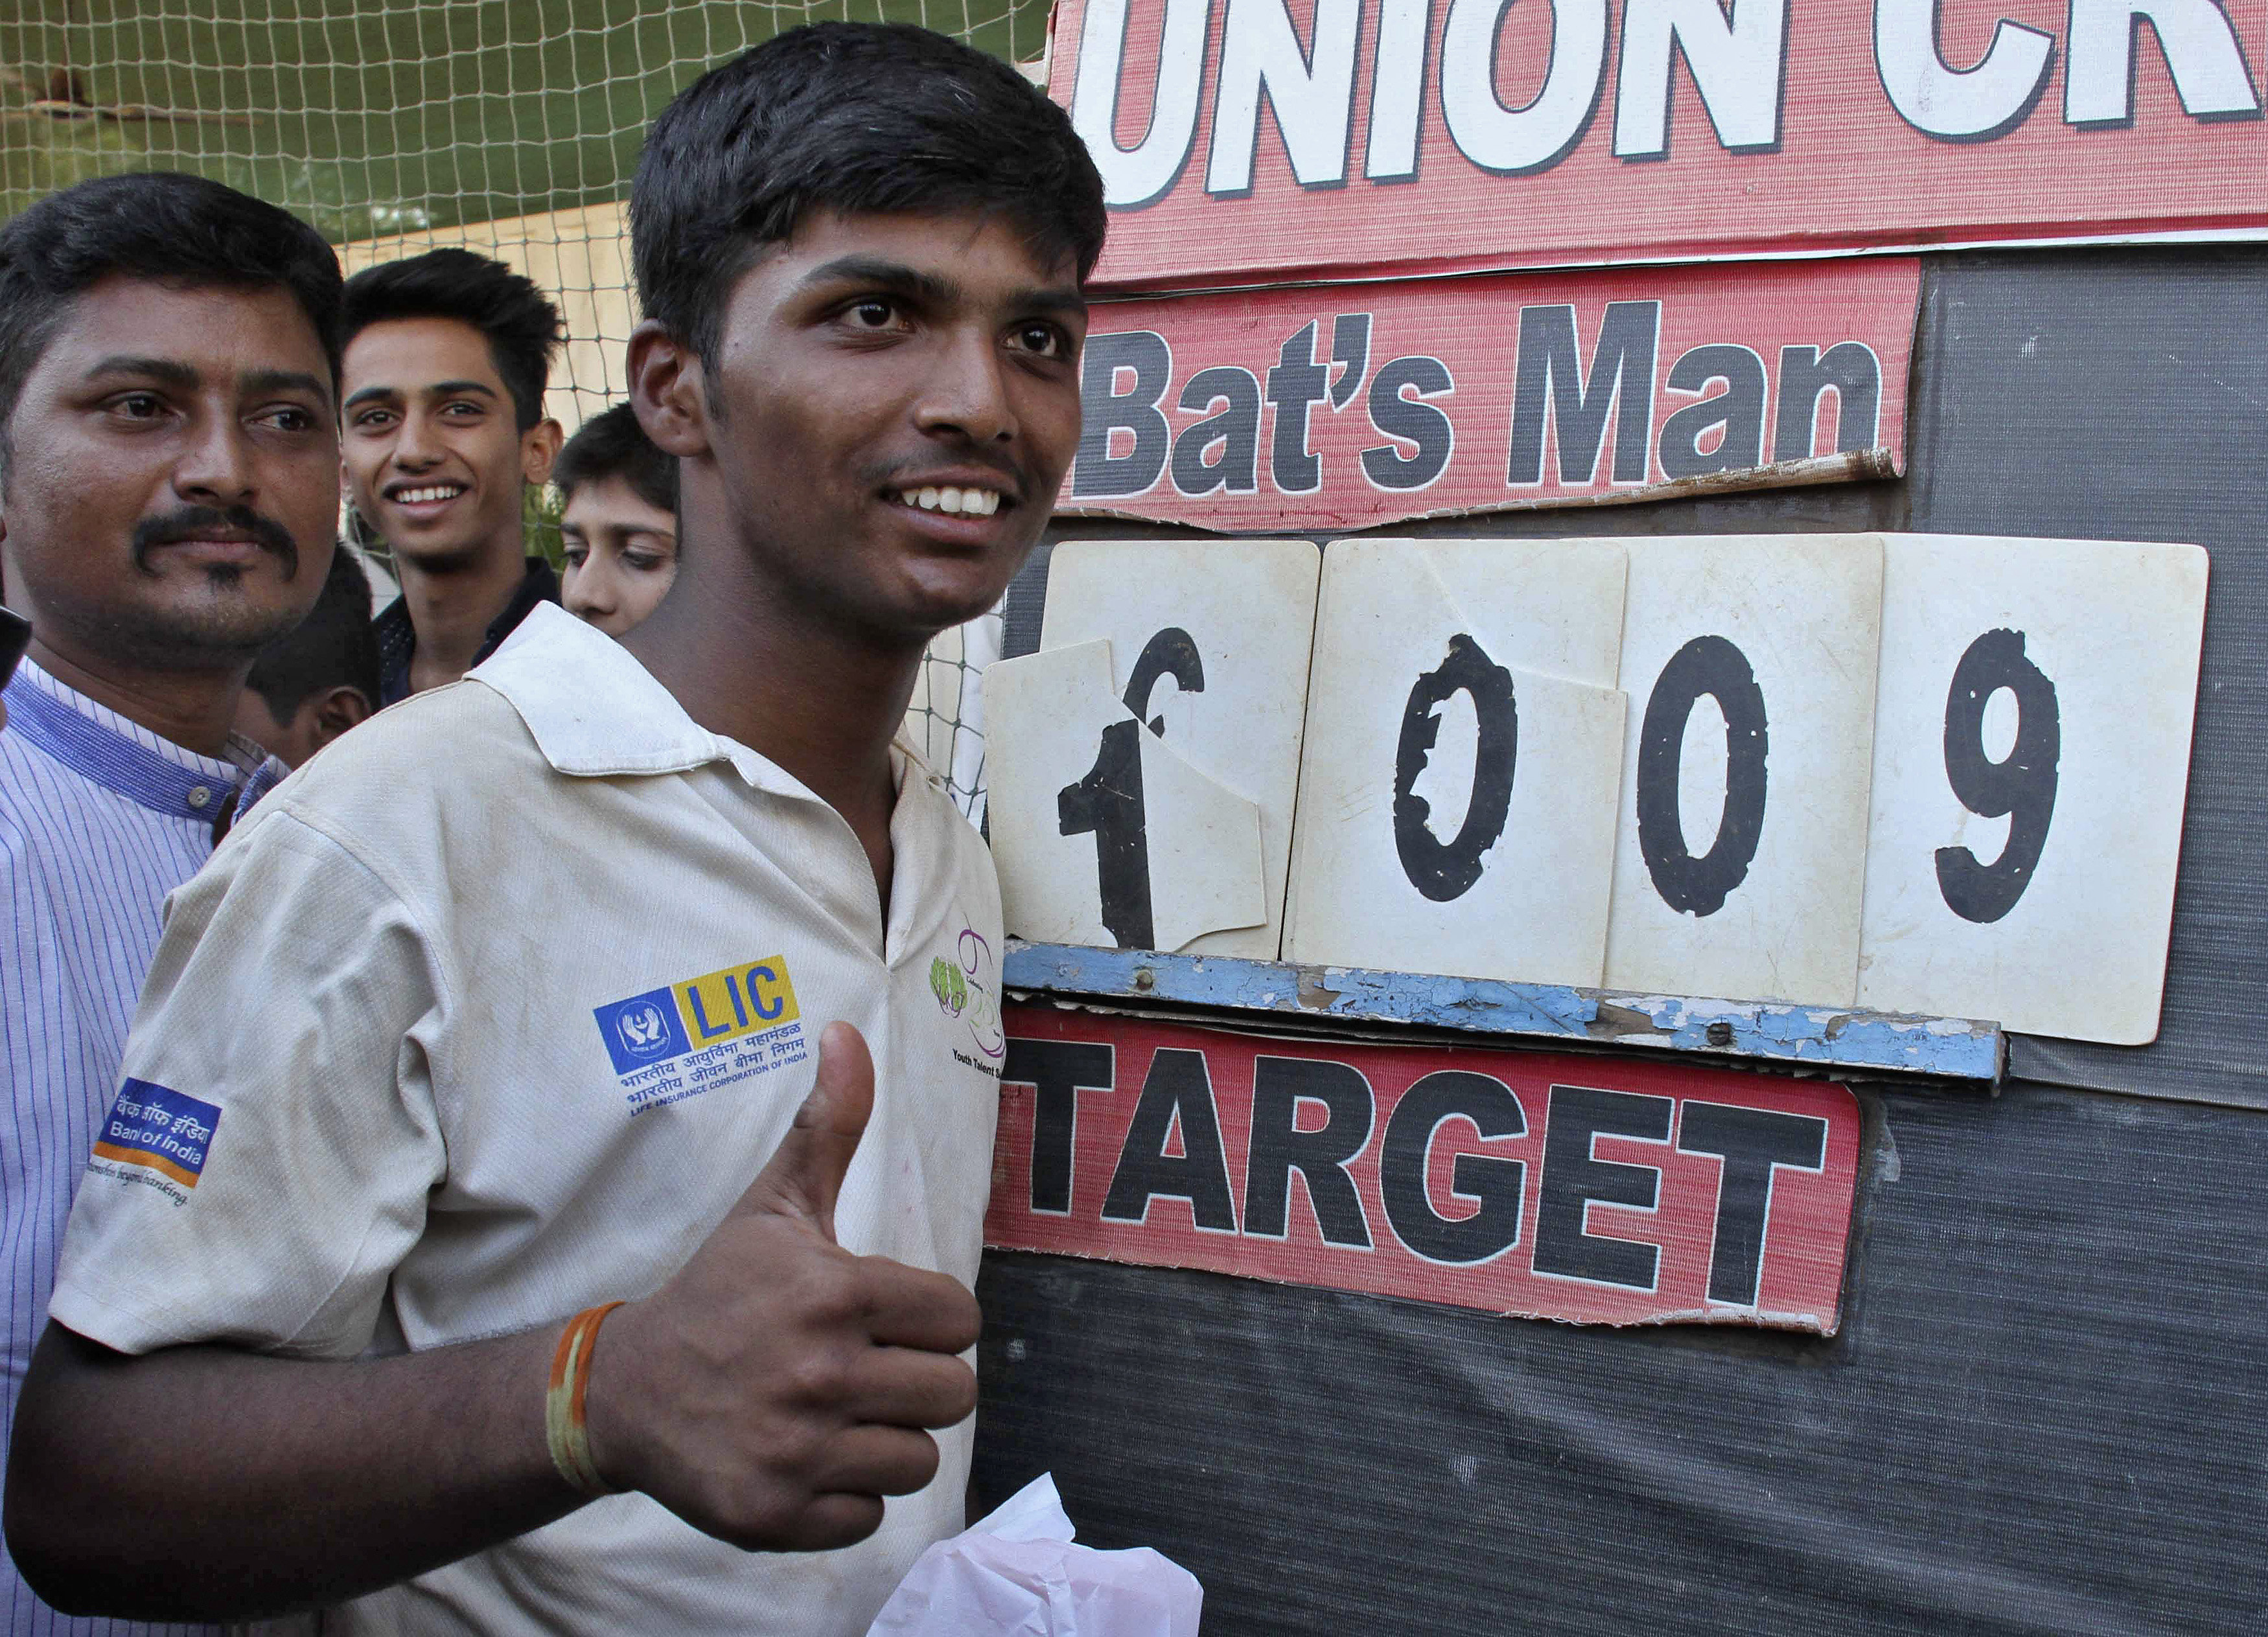 Schoolboy Pranav Dhanawade, 15, gestures as he poses next to the scoreboard during an inter-school cricket tournament in Mumbai, India, January 5, 2016. Photo: Reuters